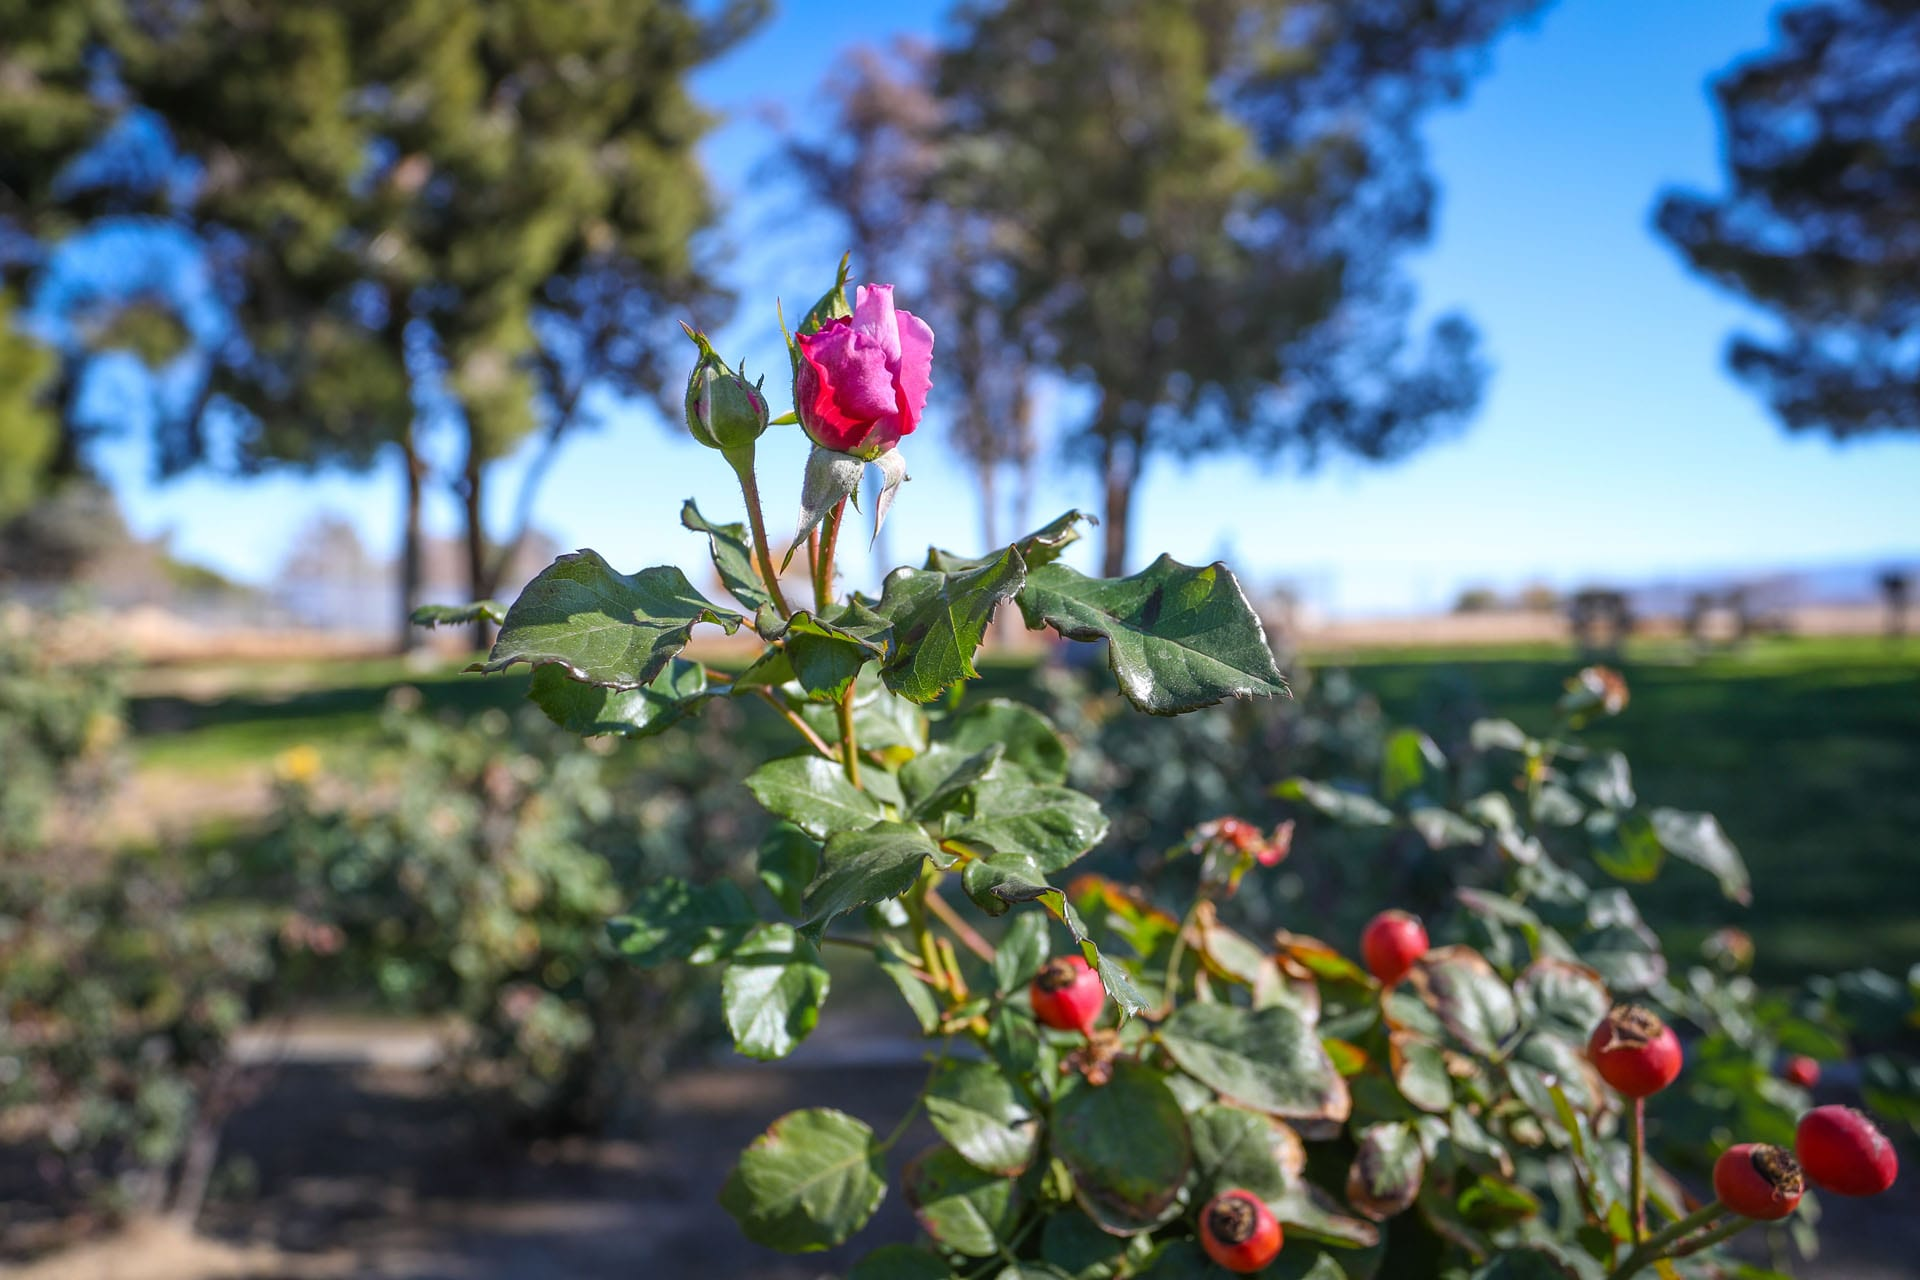 Roses and rose buds